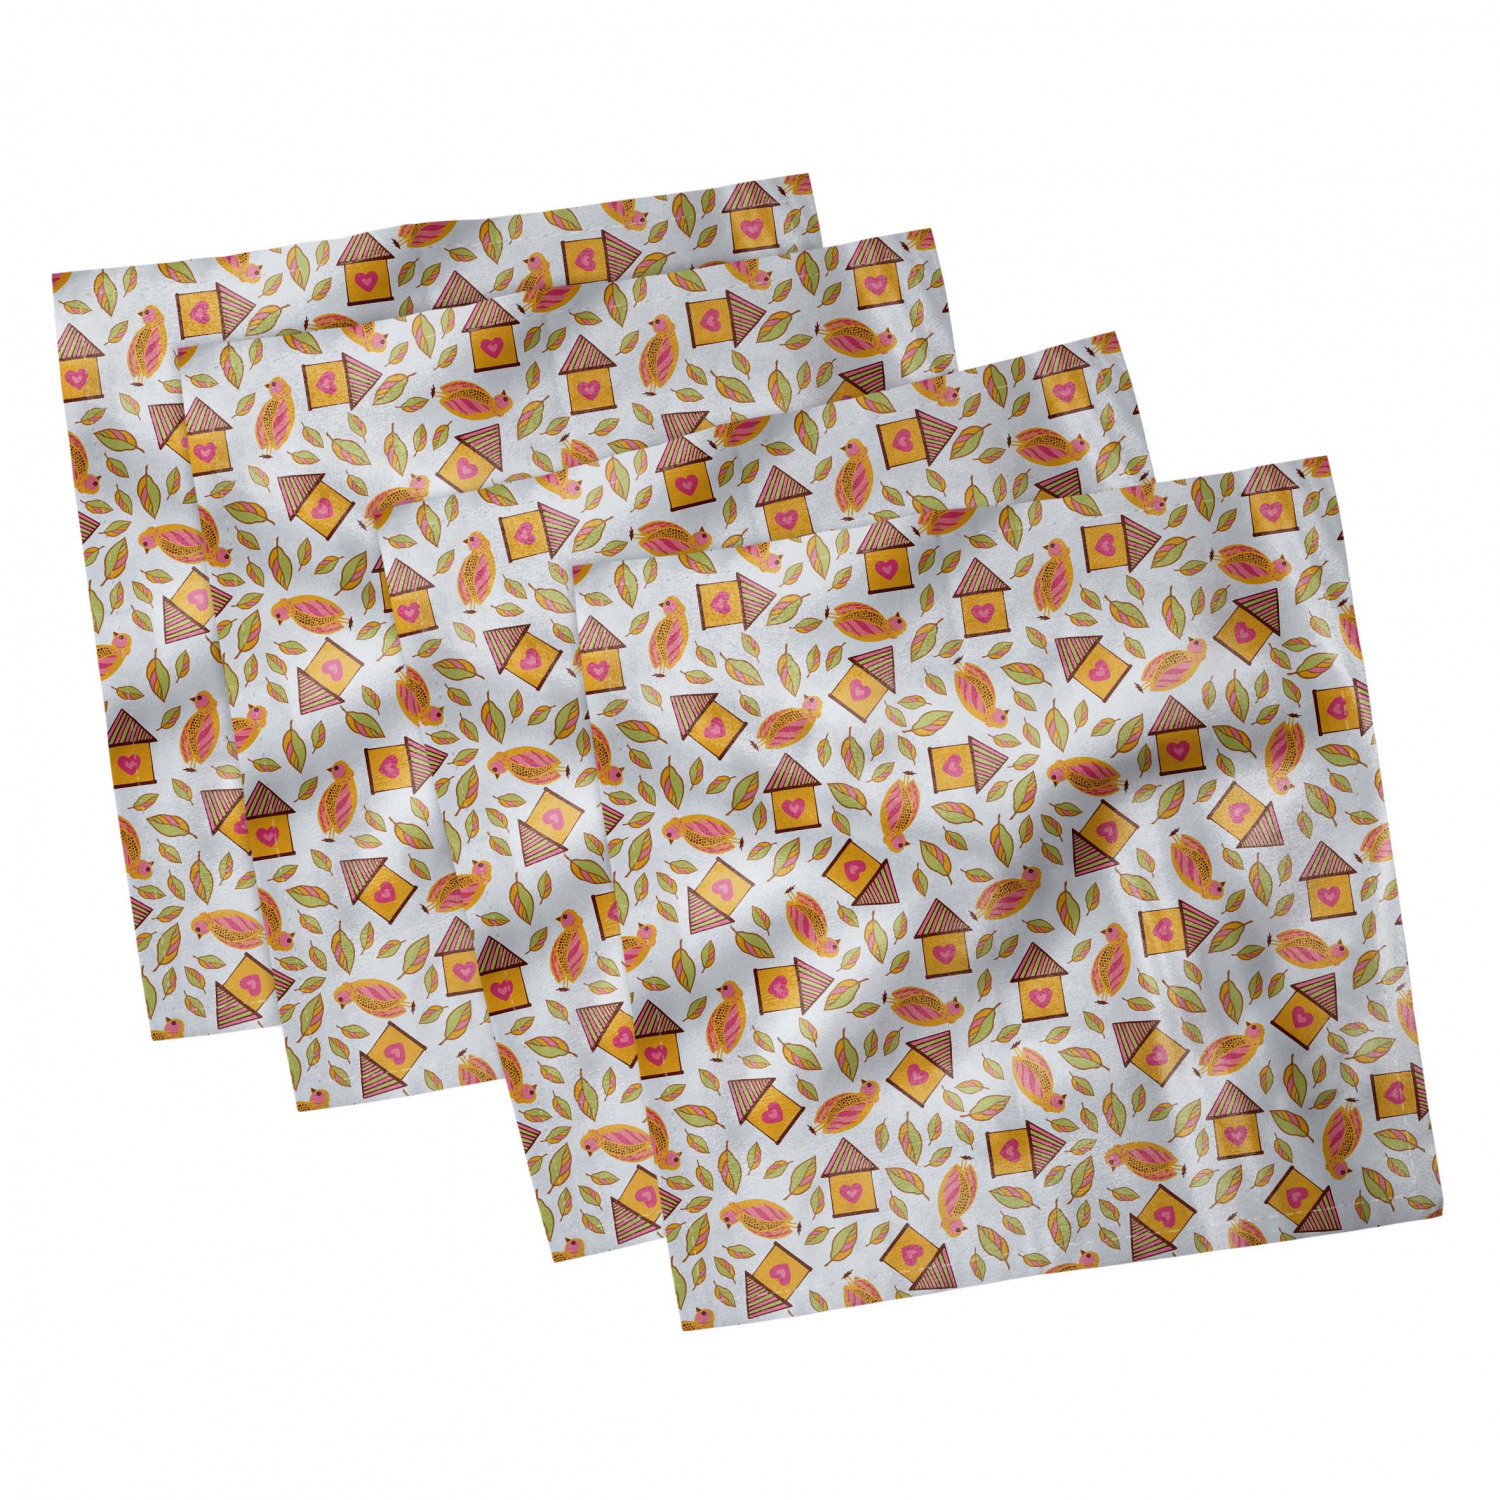 thumbnail 11 - Ambesonne-Autumn-Fall-Decorative-Satin-Napkins-Set-of-4-Party-Dinner-Fabric